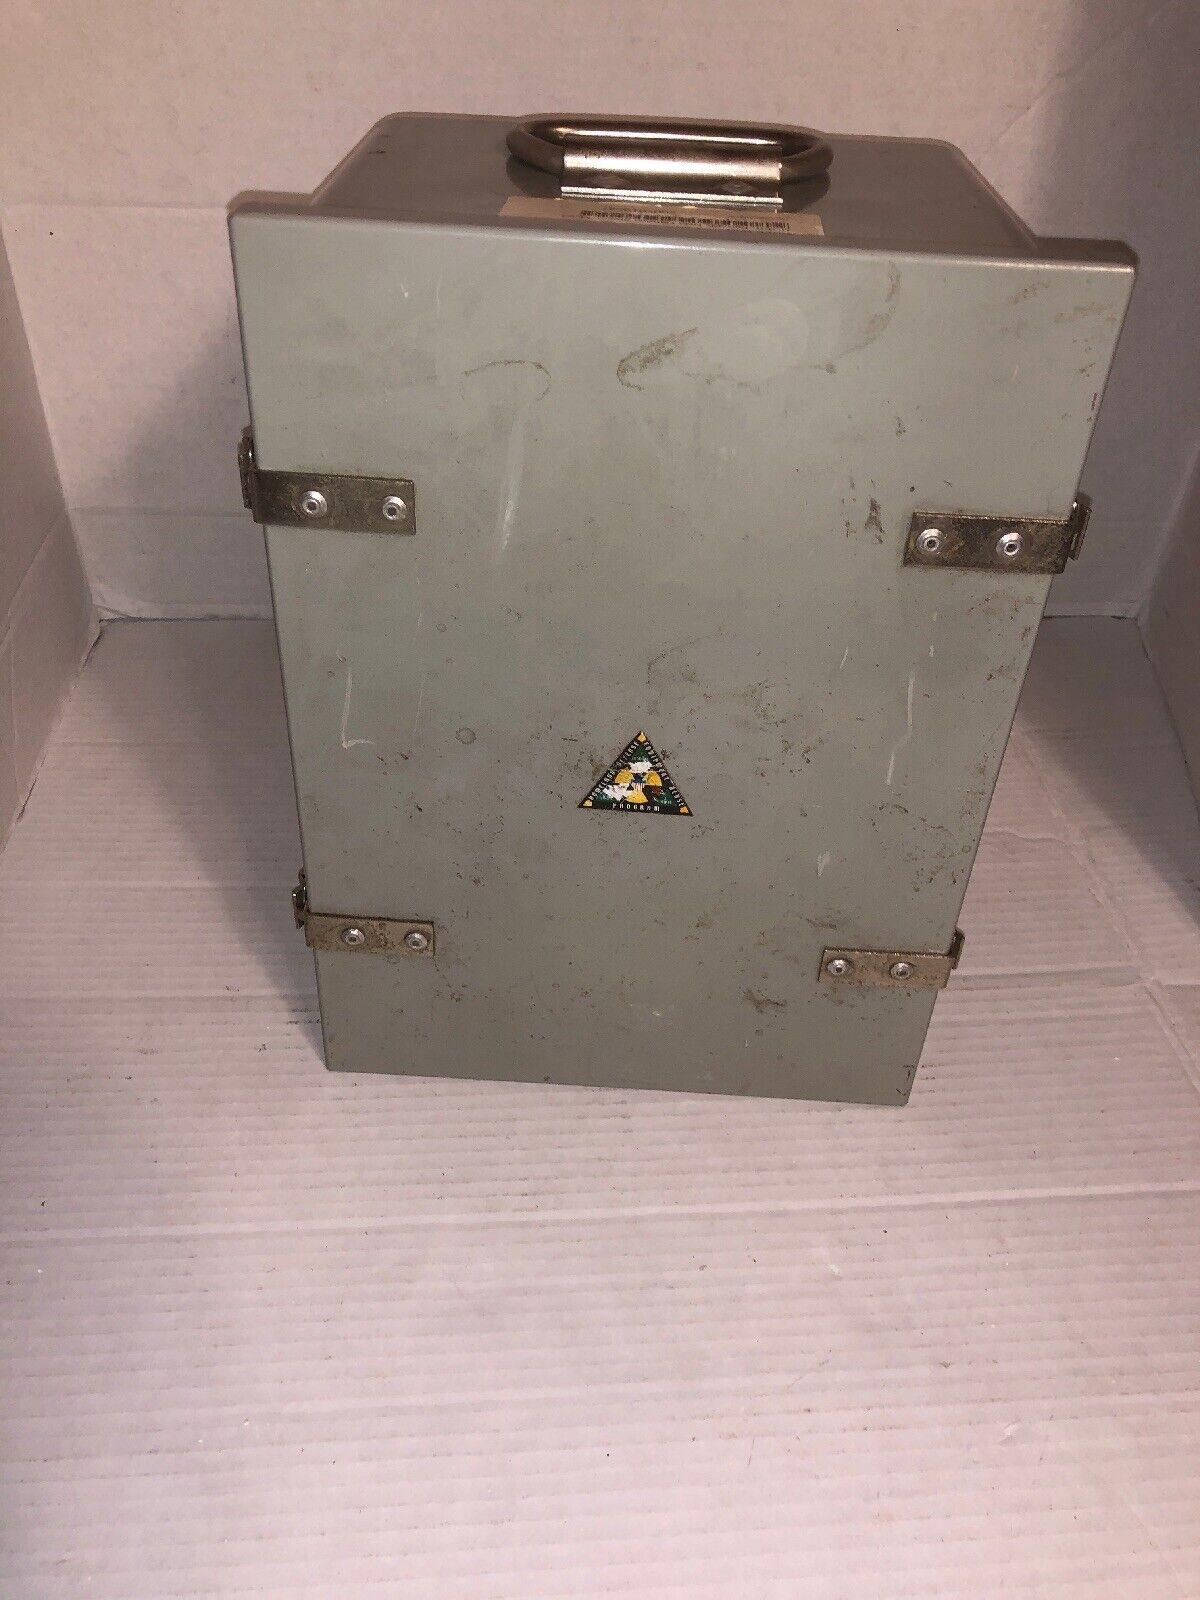 s l1600 - HDER G-01 Radiation Detector Geiger Counter with Beta Gamma Probes Case Untested